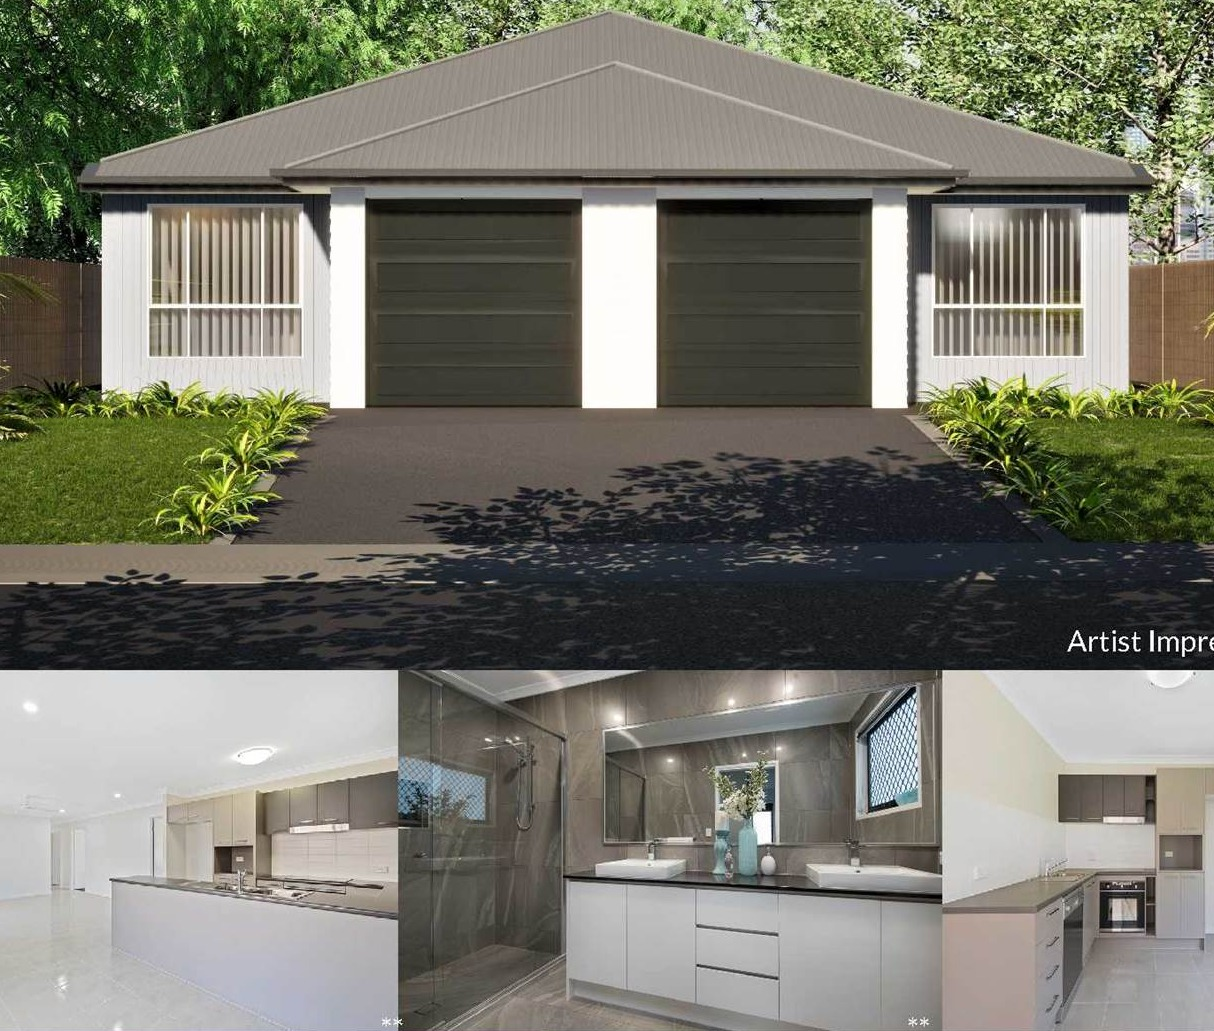 Lot 24 Dominique Way, Flinders View Ipswich, QLD 4305